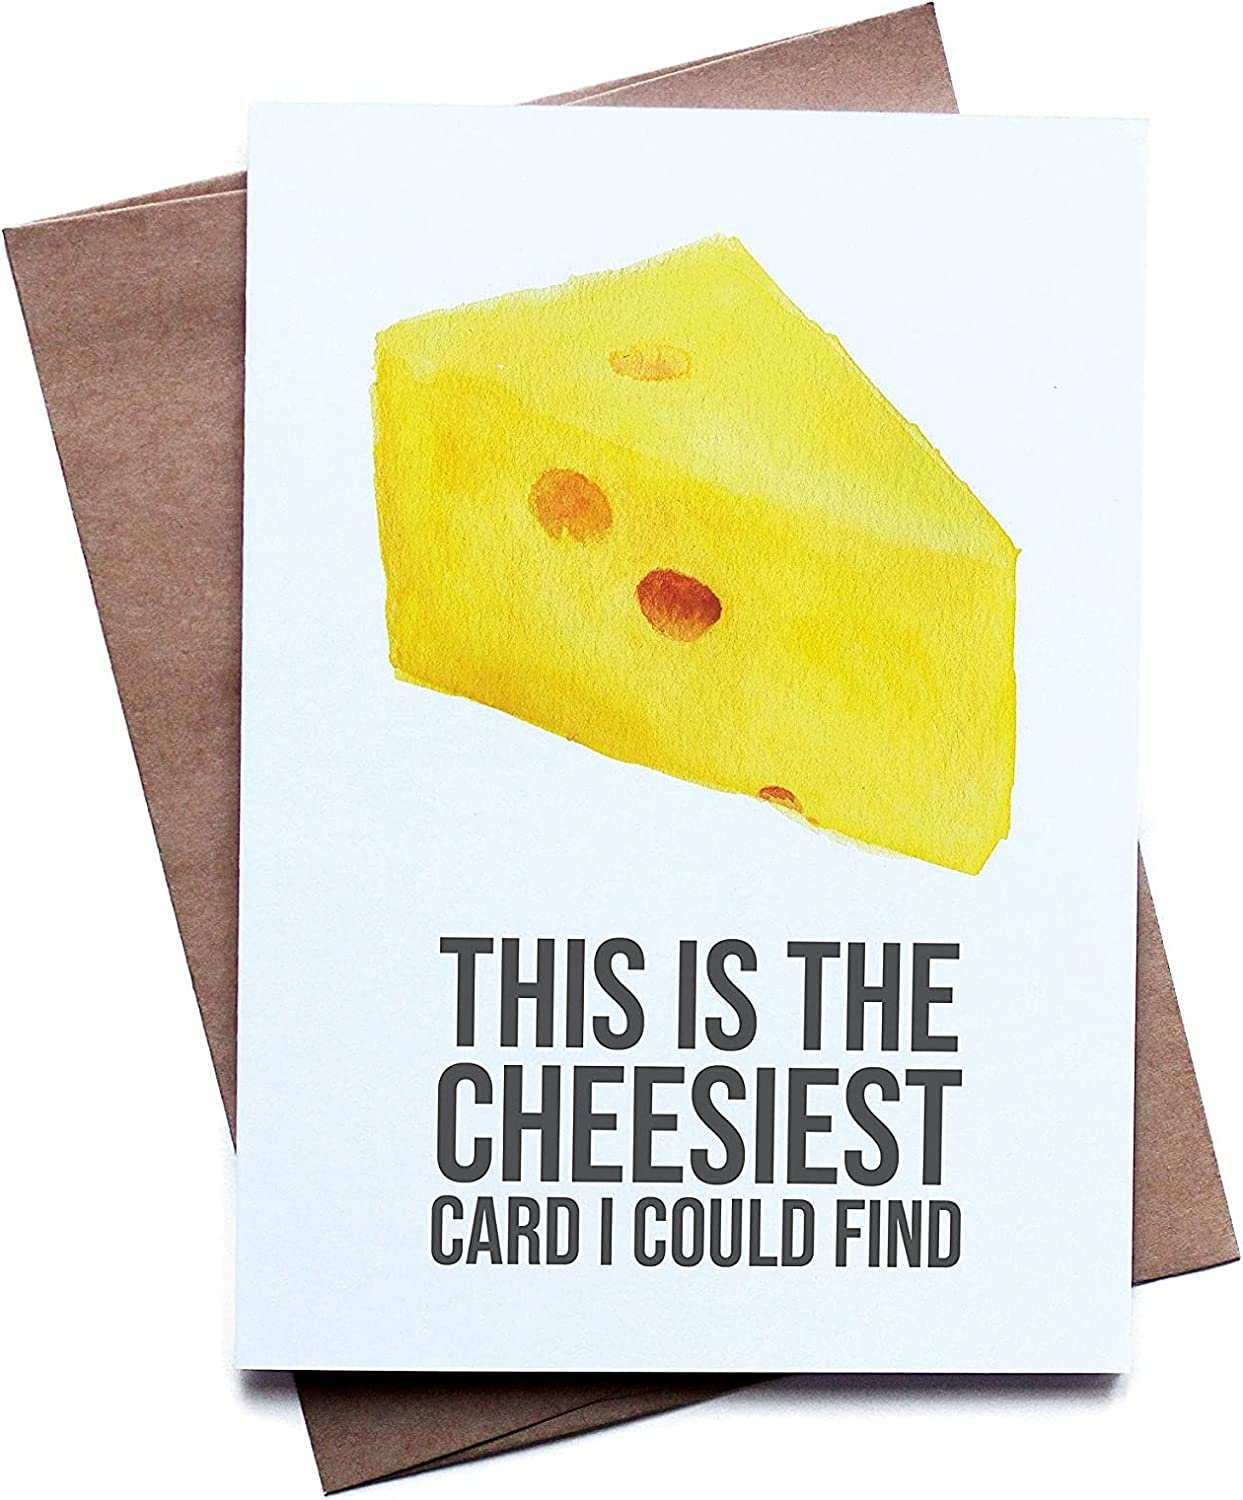 DKISEE Greeting Card for Dad Mom, Cheesy Food Pun Greeting Card for Him Her I Love You Birthday Anniversary Boyfriend Girlfriend Husband Wife Macaroni and Cheese 7x10 Inch